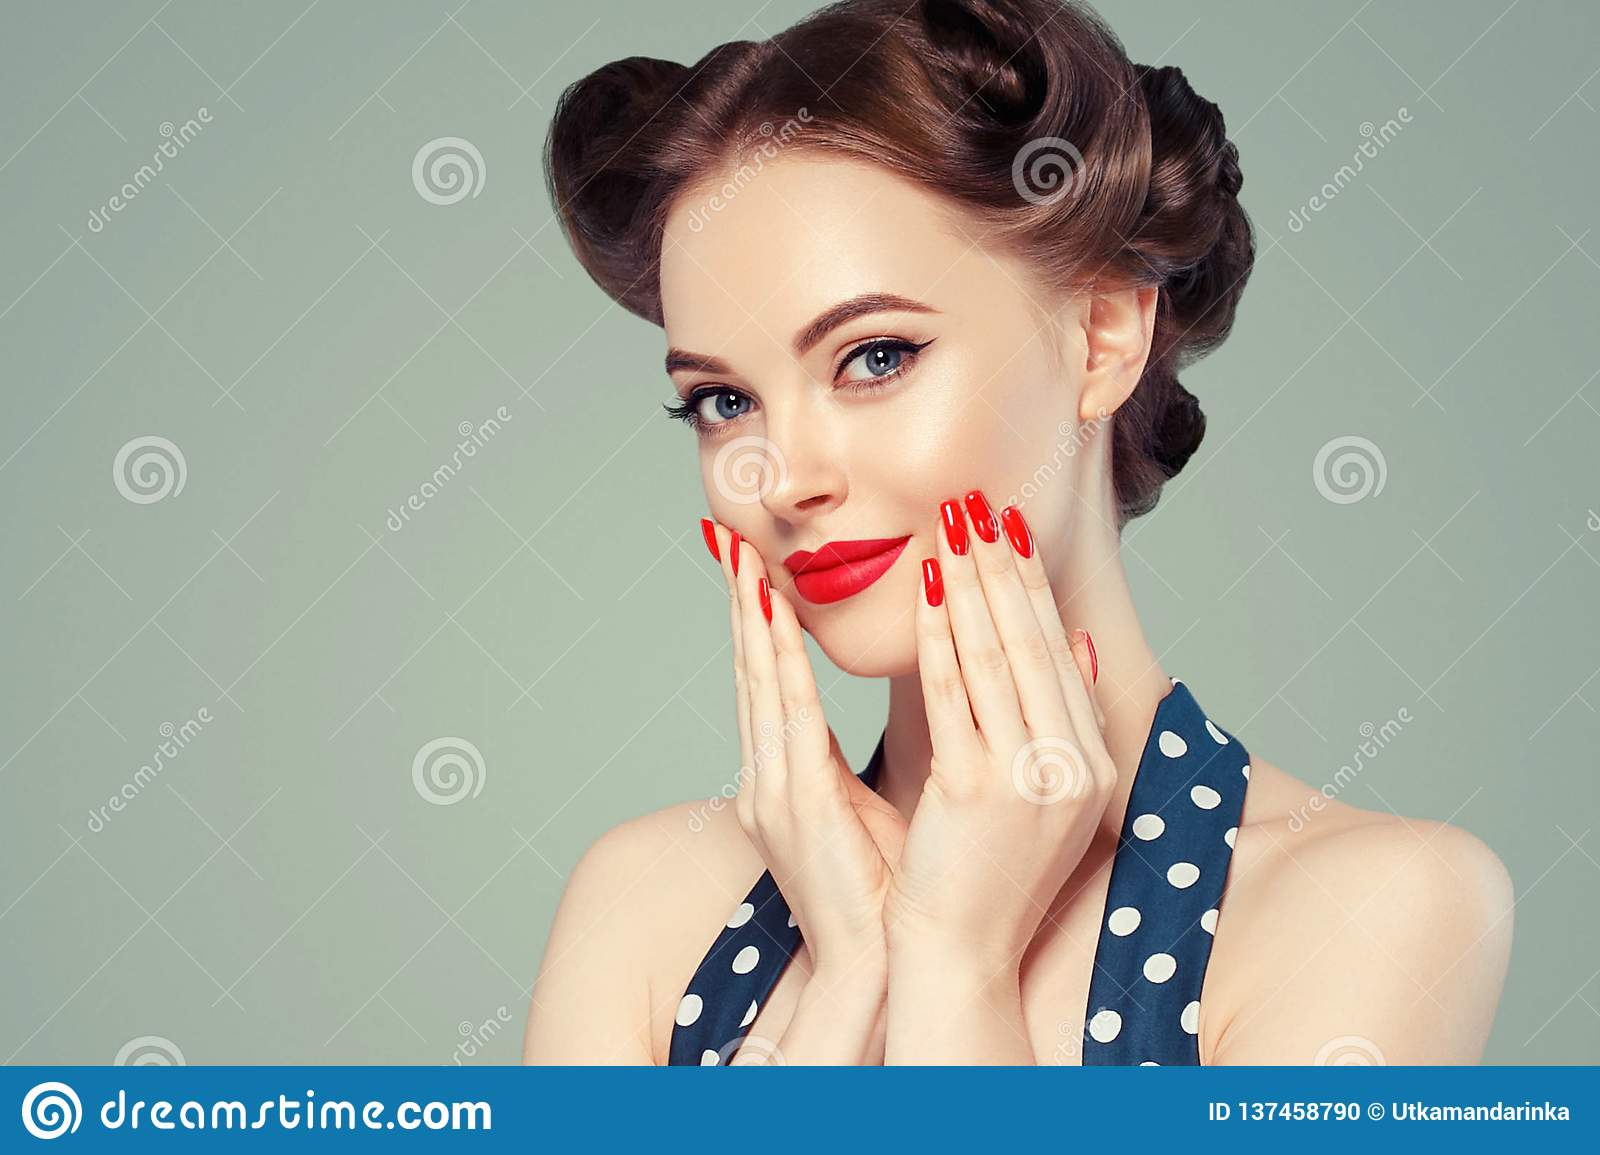 Pin up girl vintage. Beautiful woman pinup style portrait in retro dress and makeup, manicure nails hands, red lipstick and polka